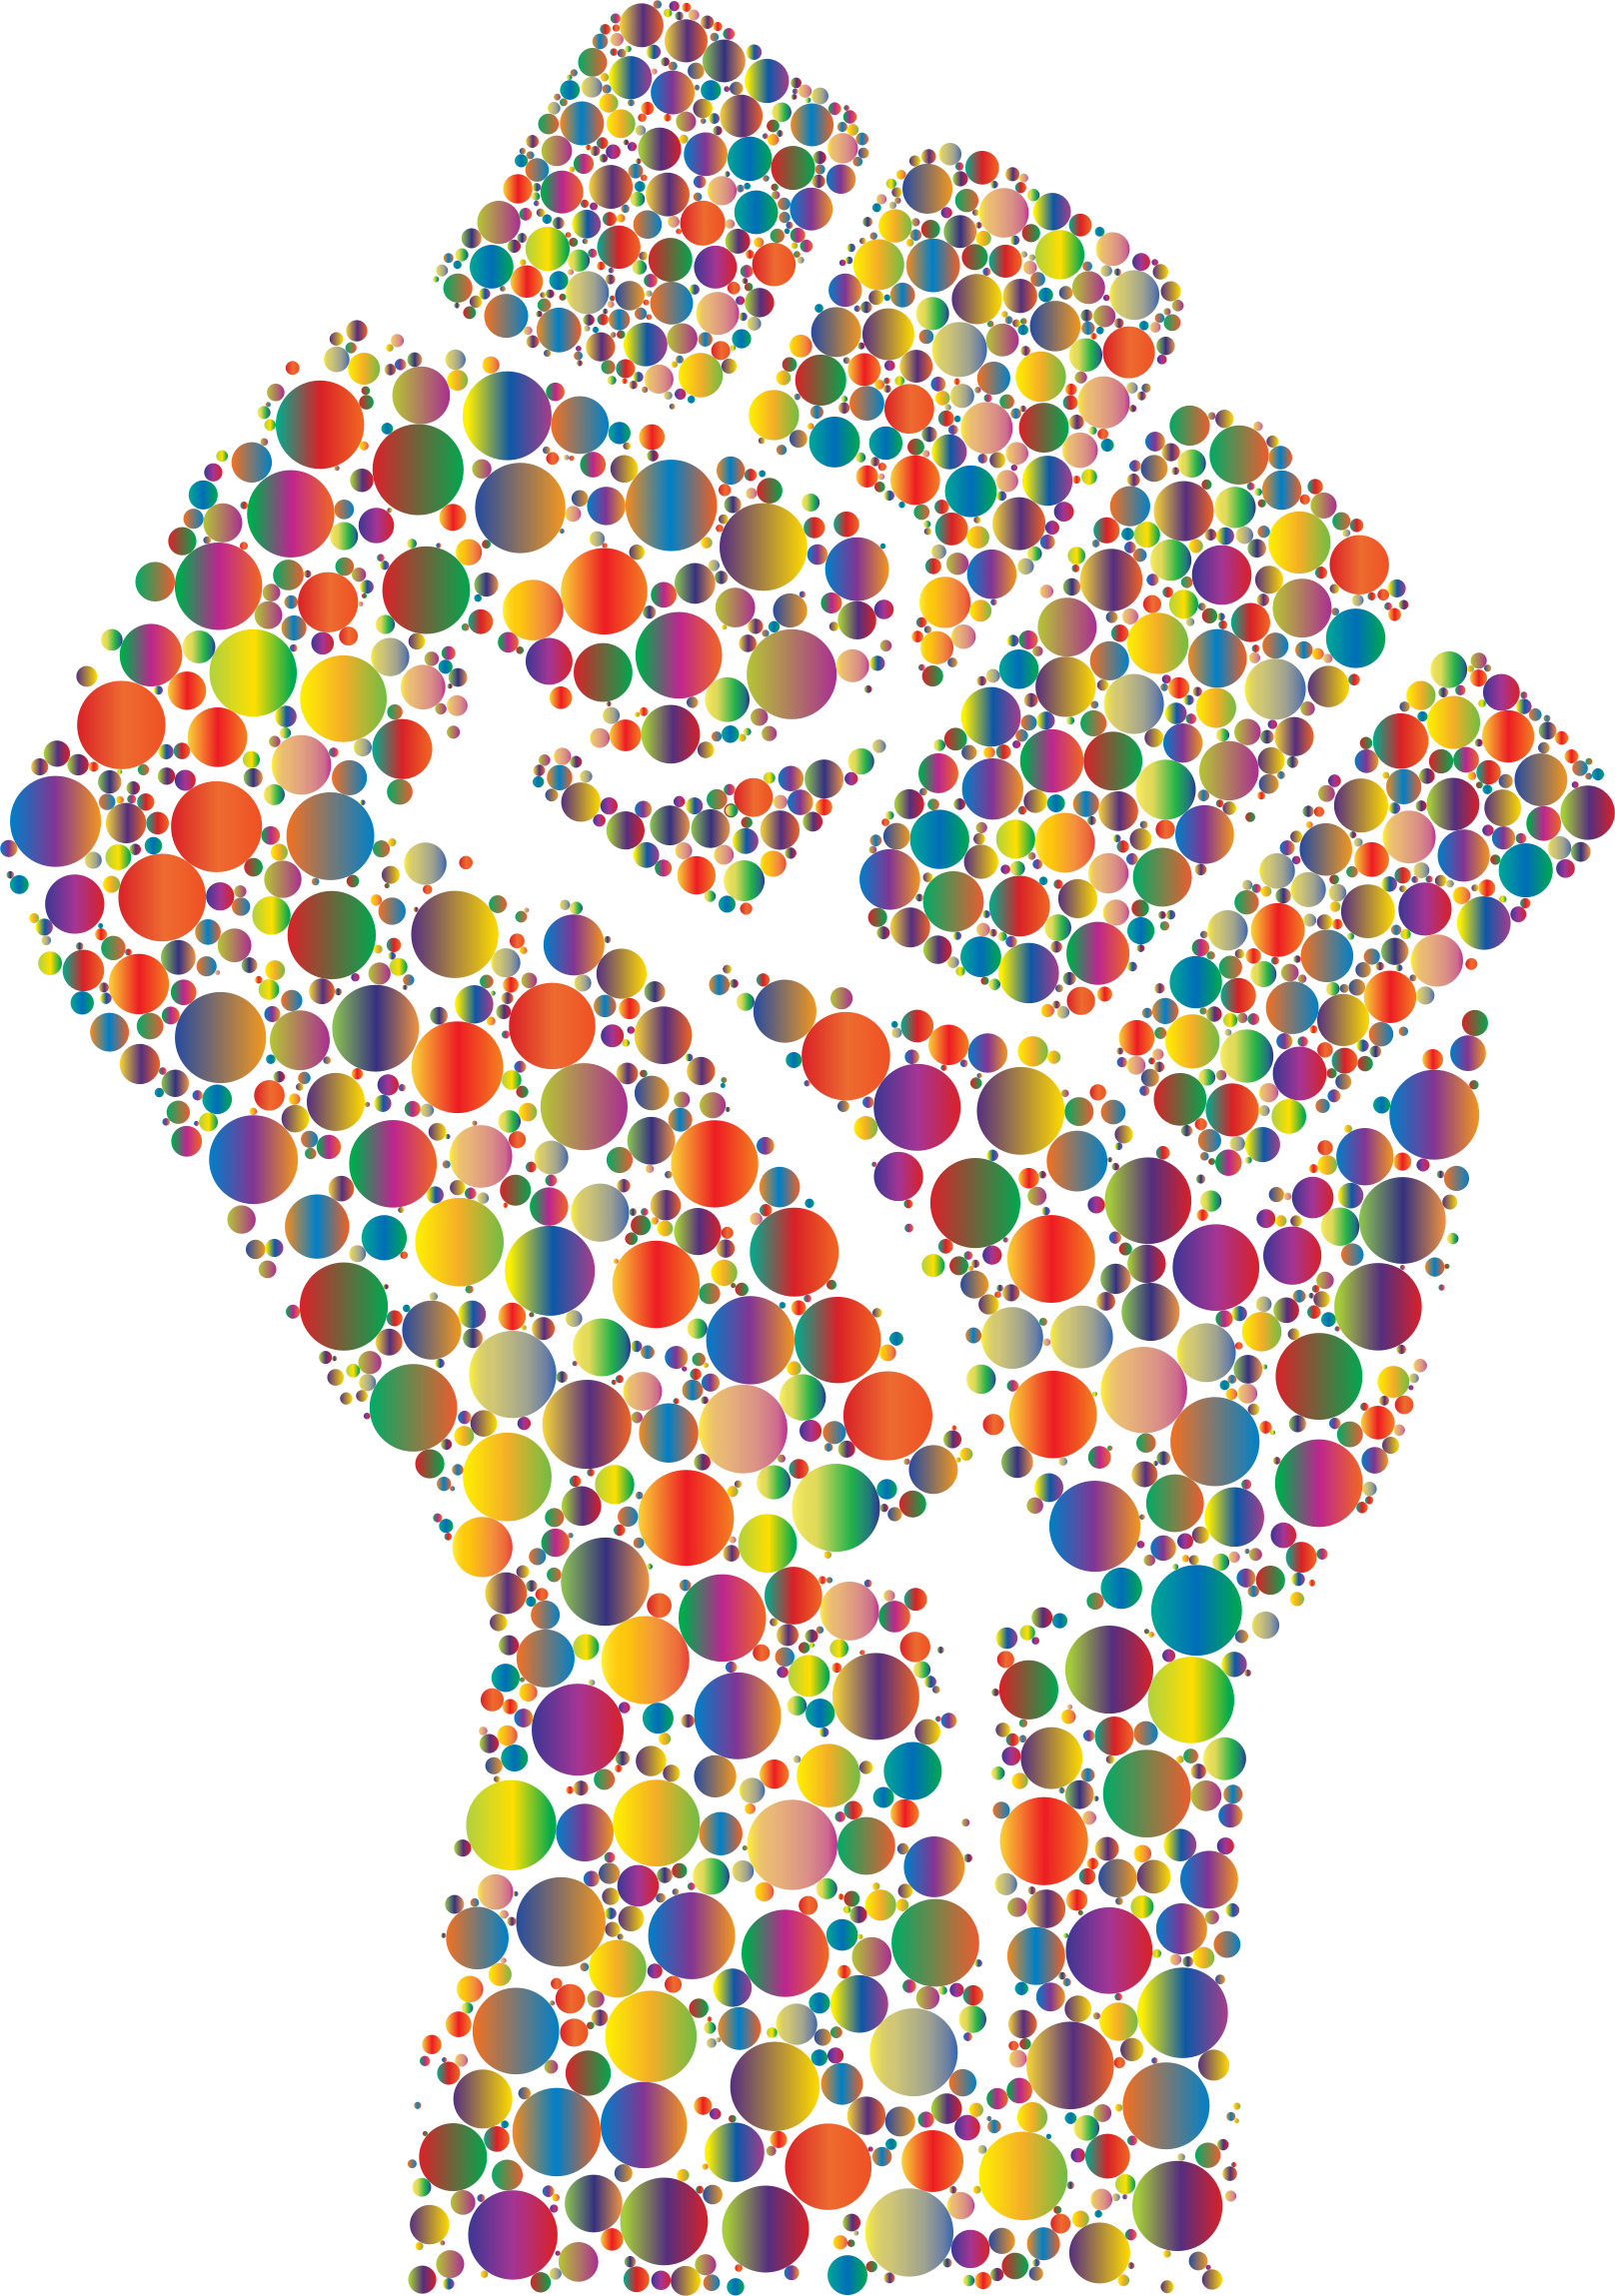 Colorful Fist Circles 6 by GDJ